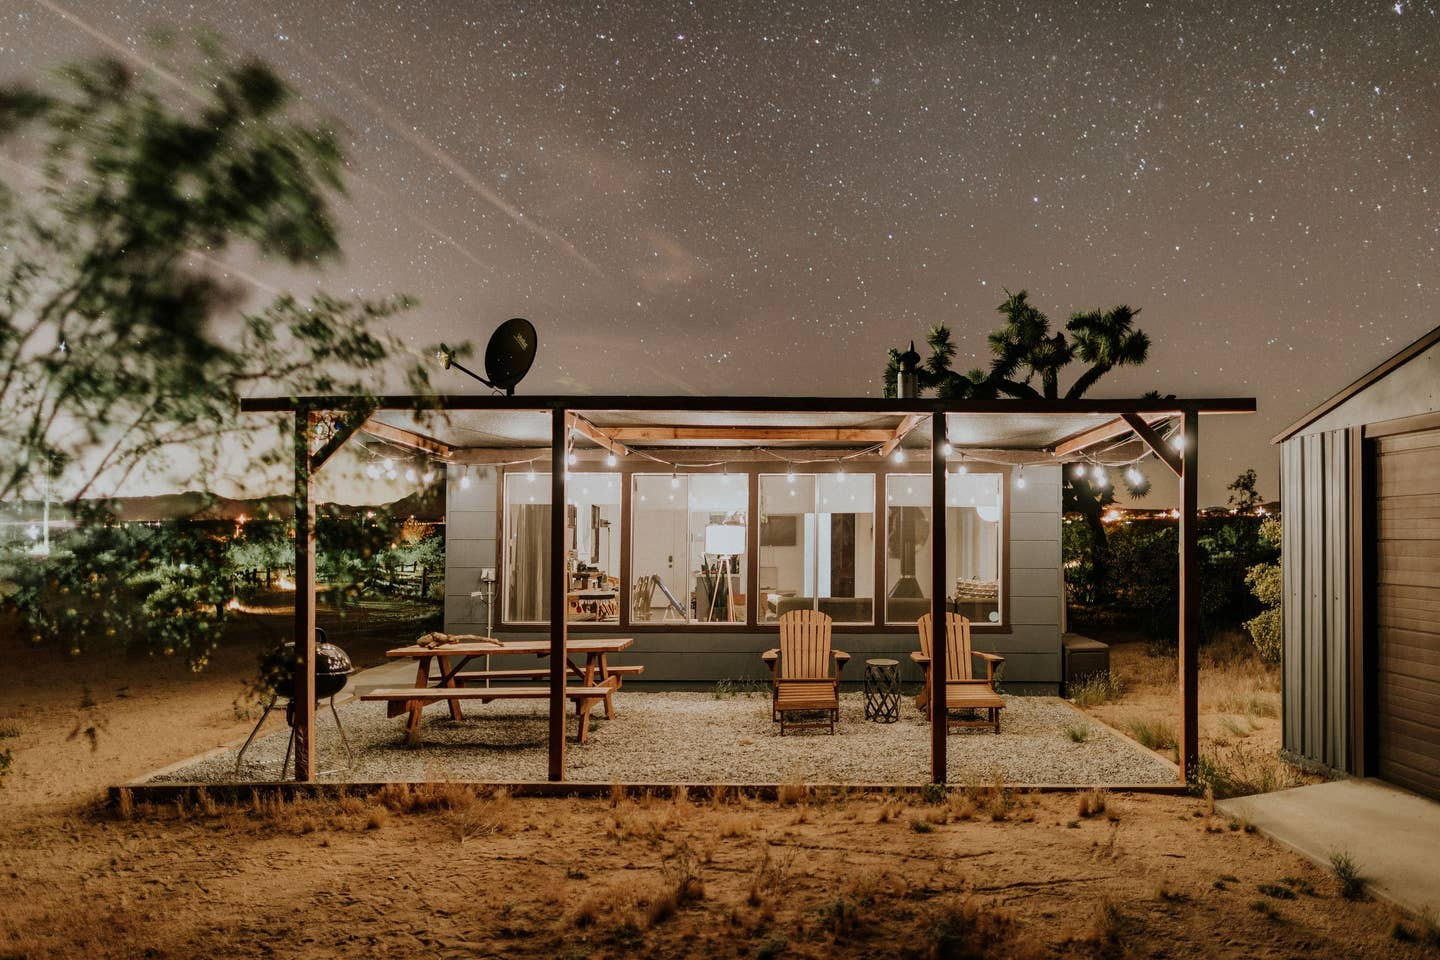 The Moon Cabin in Joshua Tree - Airbnb